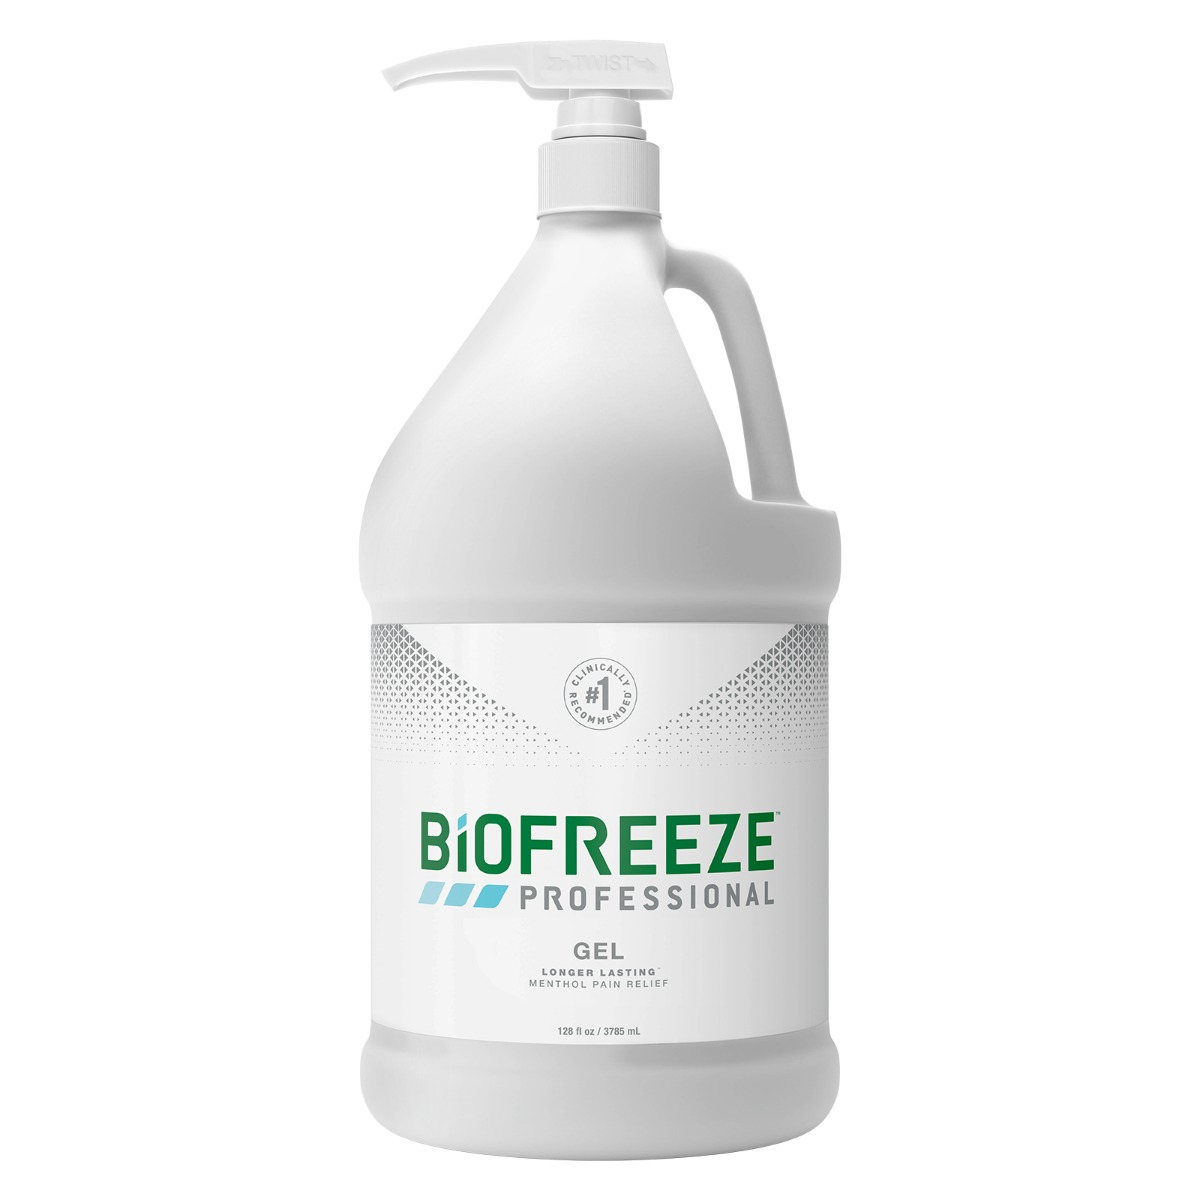 Image for Biofreeze Professional - 1 Gallon Gel - Original Green from Stockd.